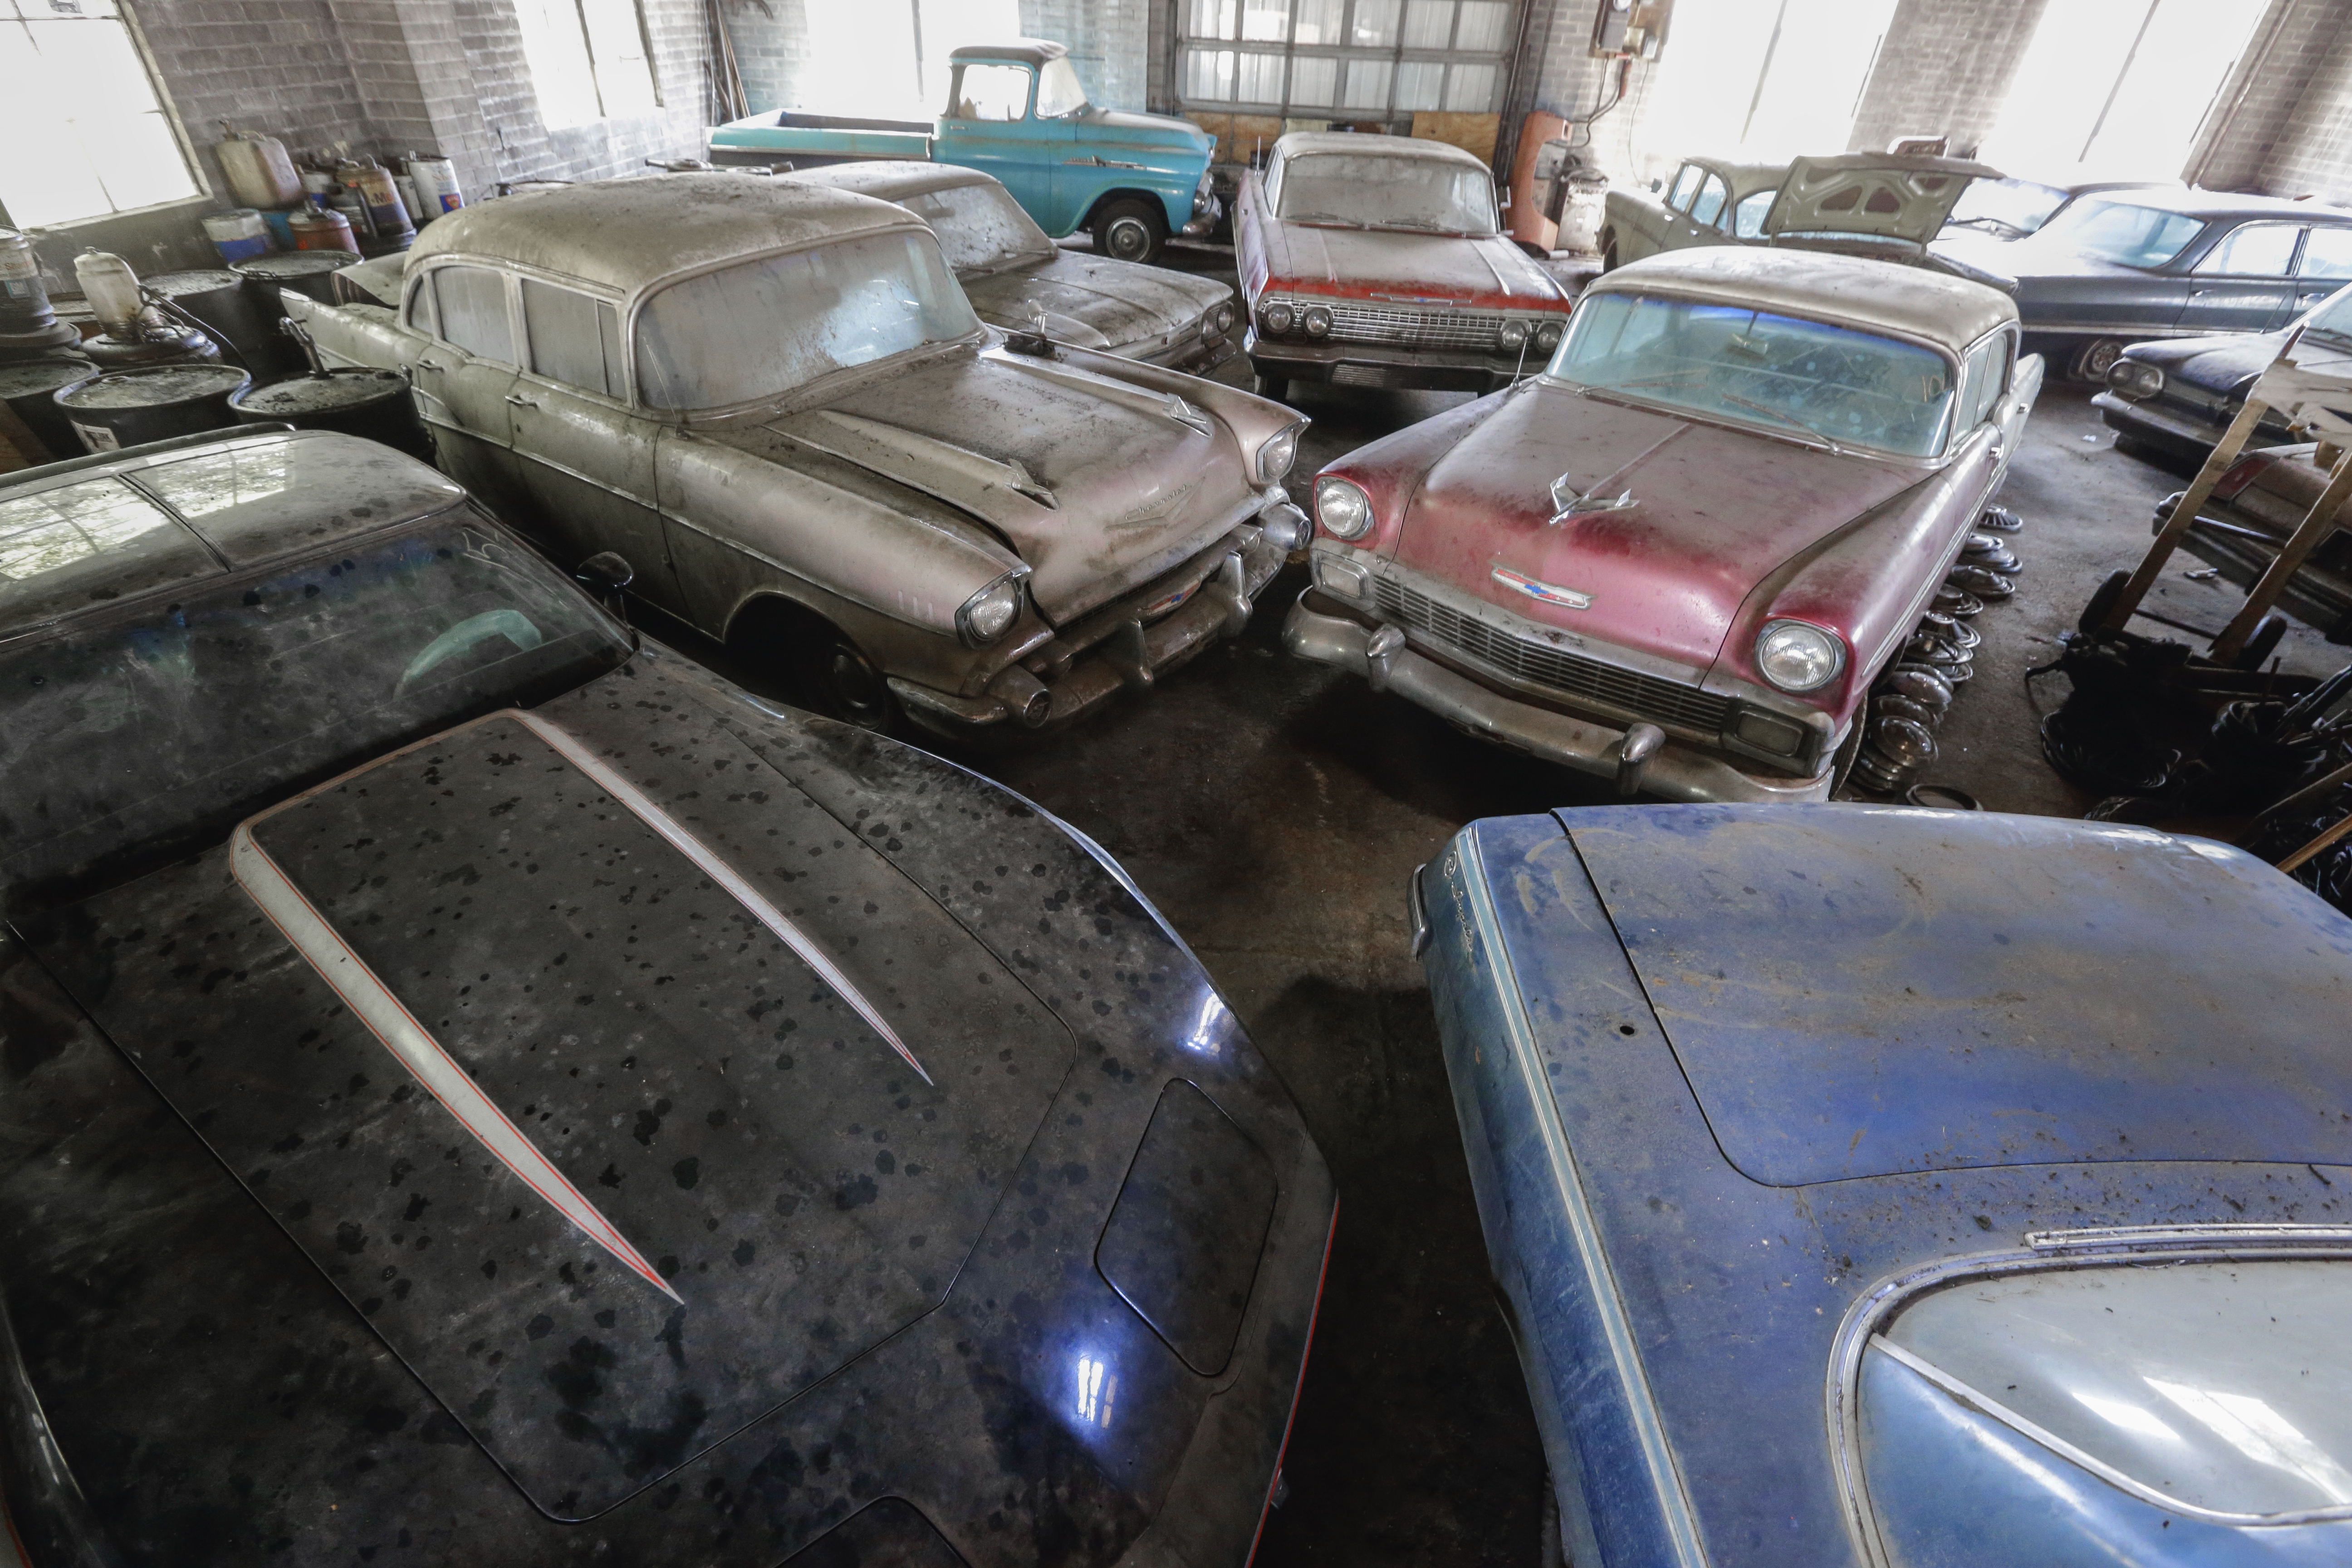 A file photo from August shows some of the cars that had been stored in the old showroom of the former Lambrecht Chevrolet dealership. At this weekend's auction, several of the previously unsold vehicles will come with their original paperwork and a new Nebraska title and bill of sale.